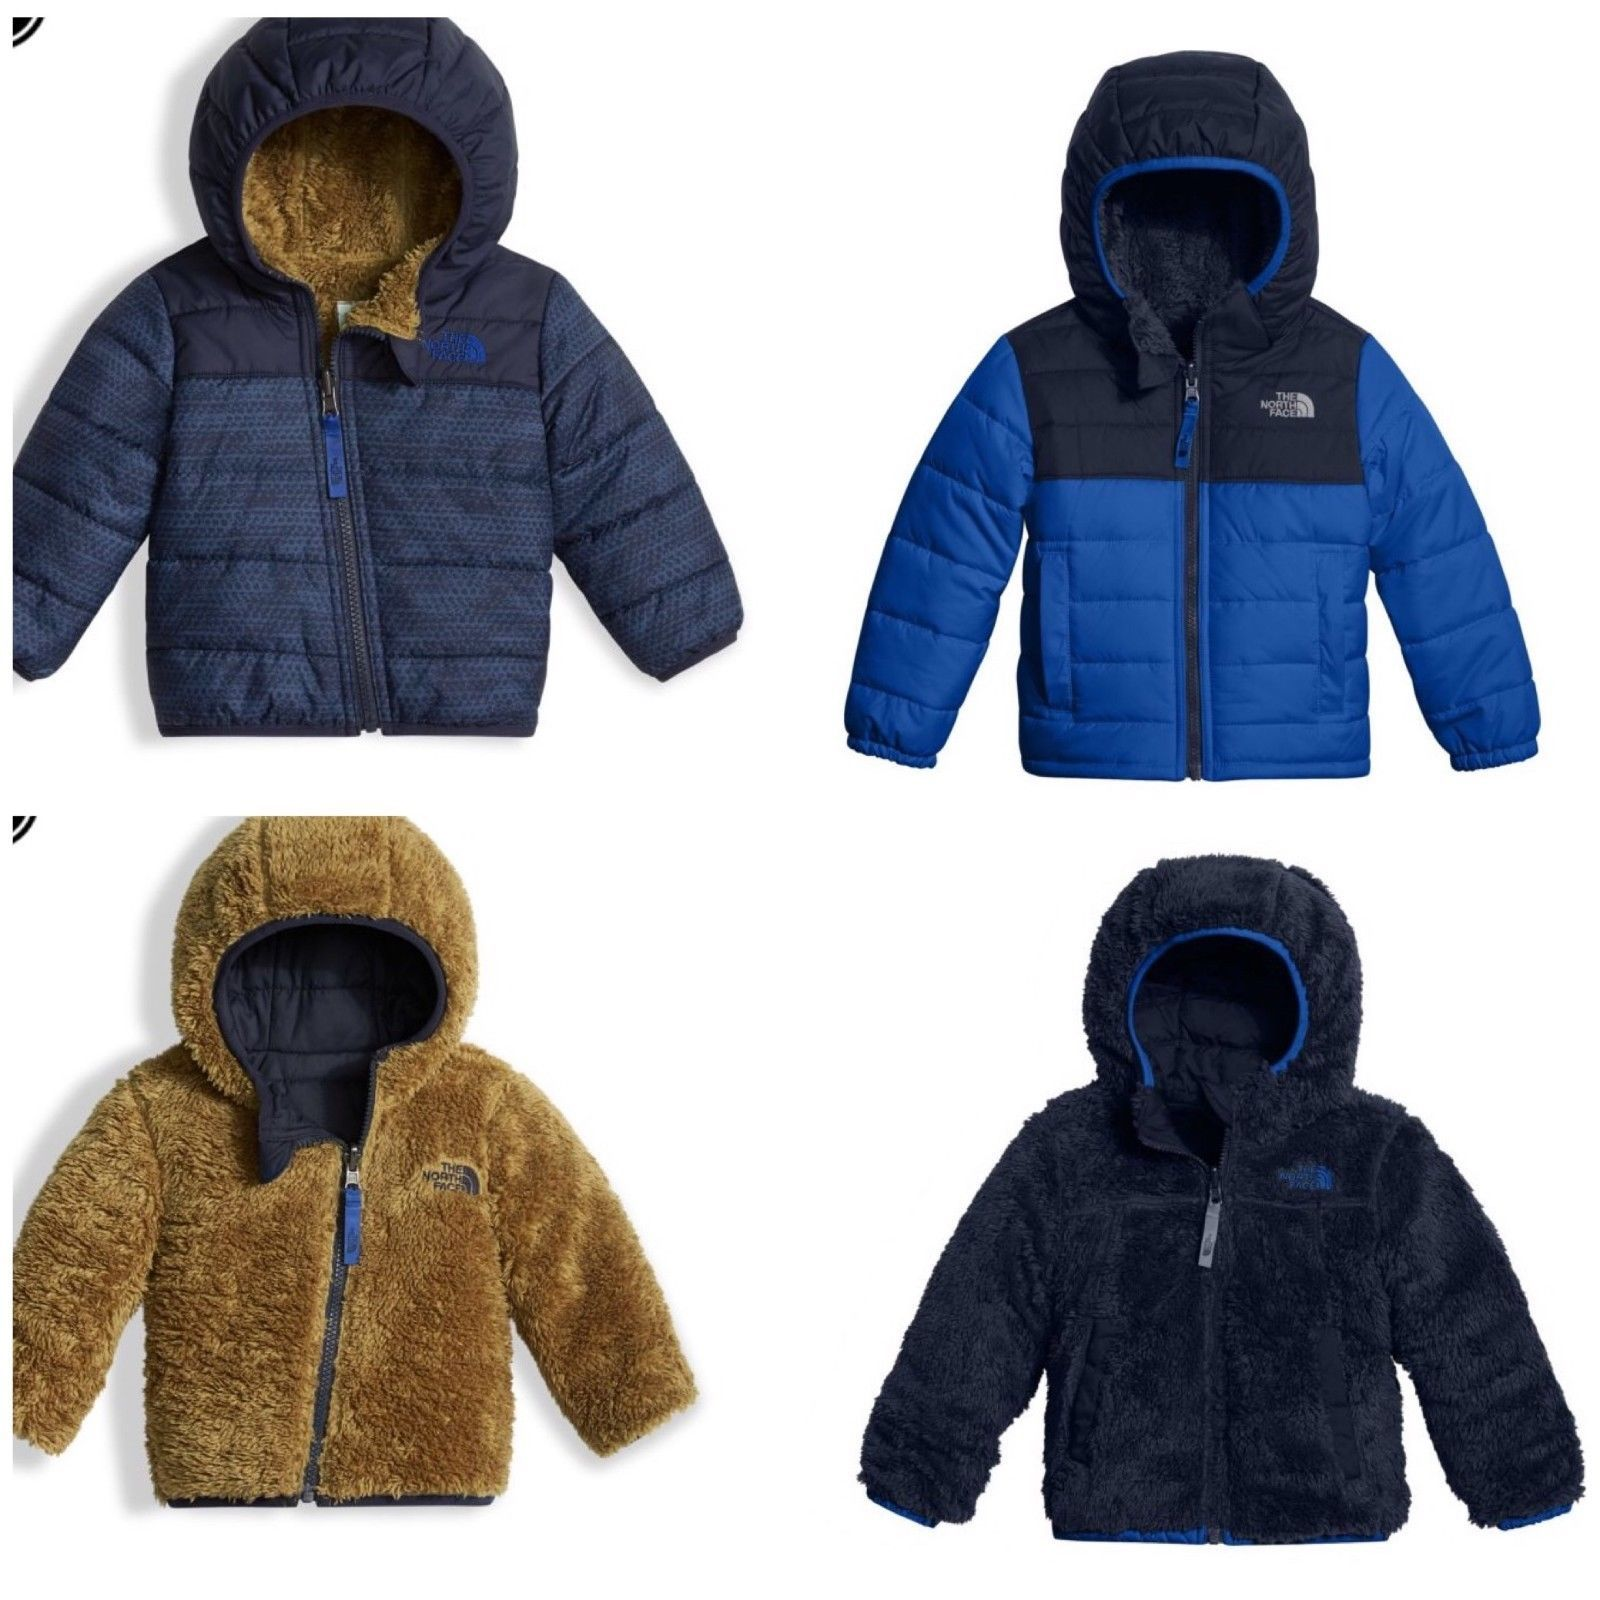 4c1964e97 Outerwear 147324: New The North Face Boys Reversible Mount ...